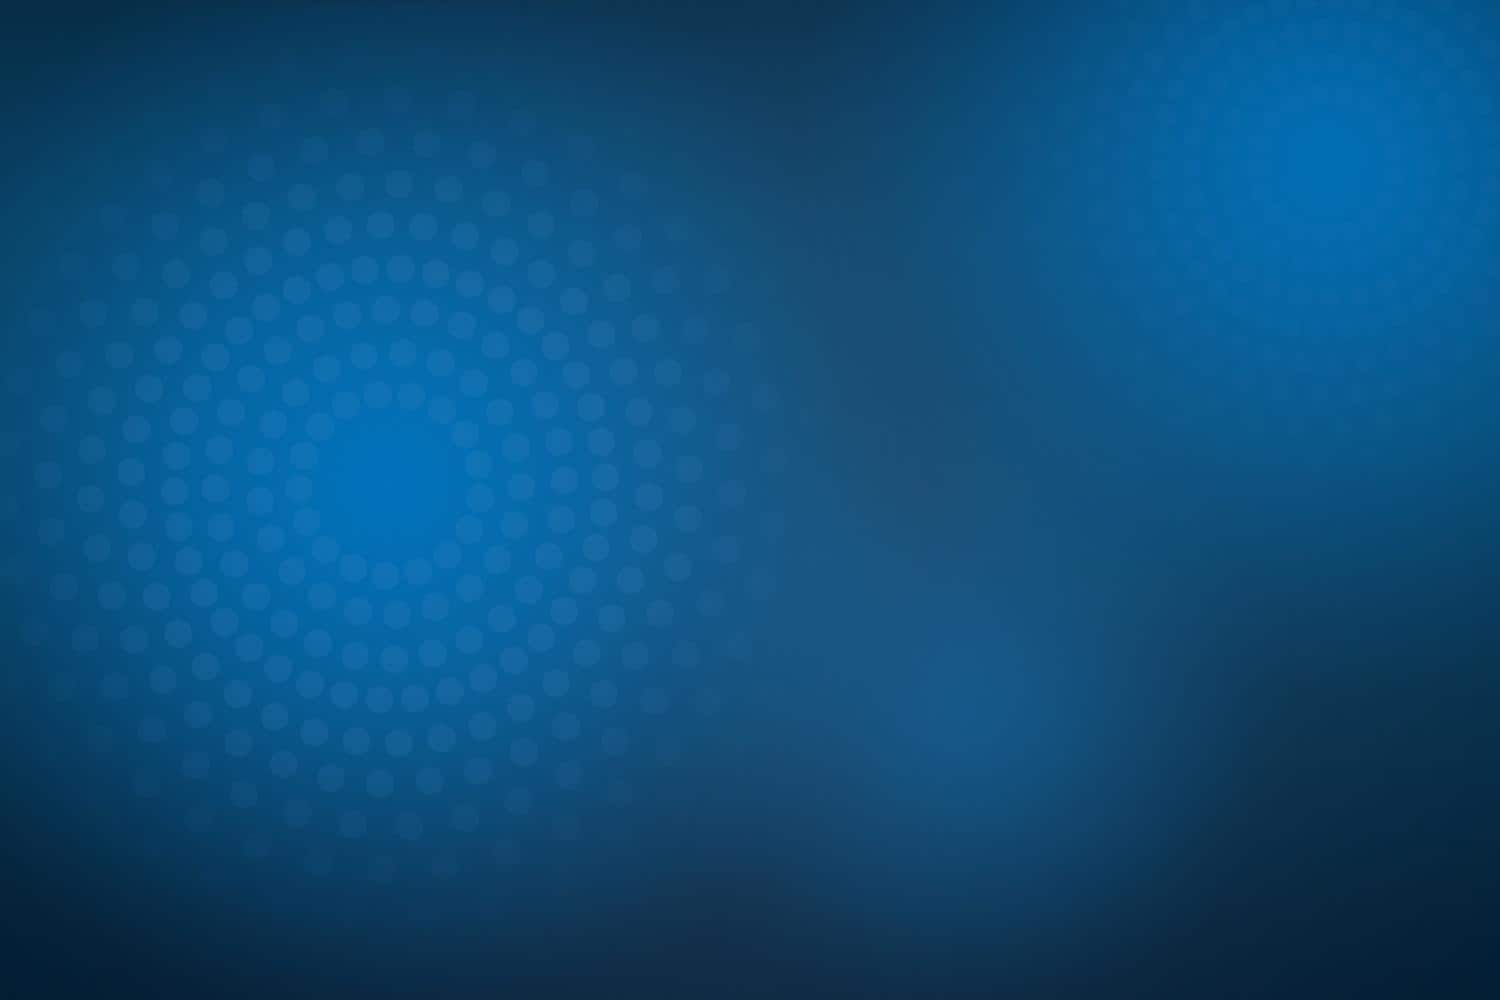 Blue background with radiance circles